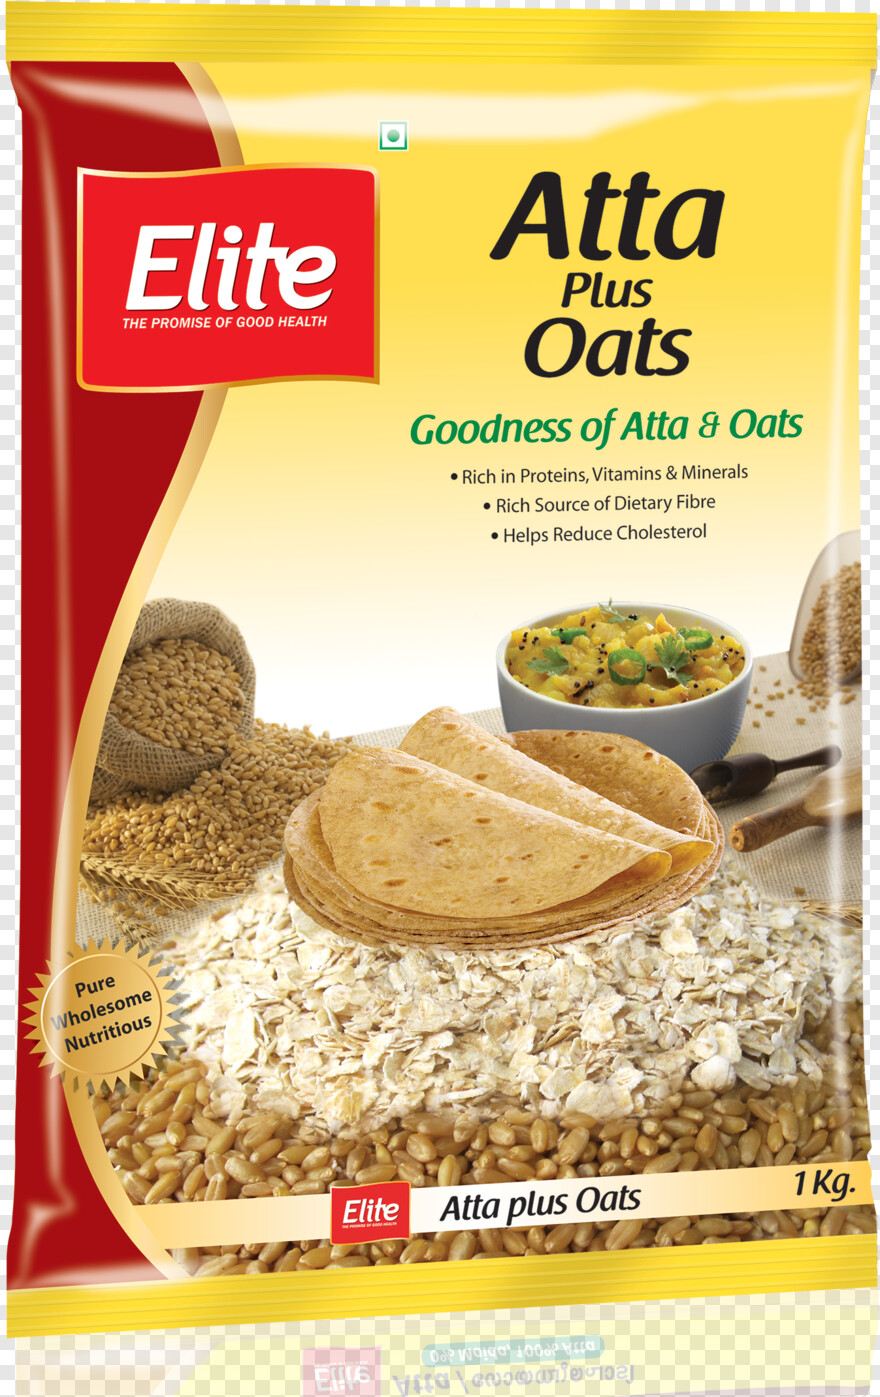 Oats - Elite Atta 1 Kg, Png Download